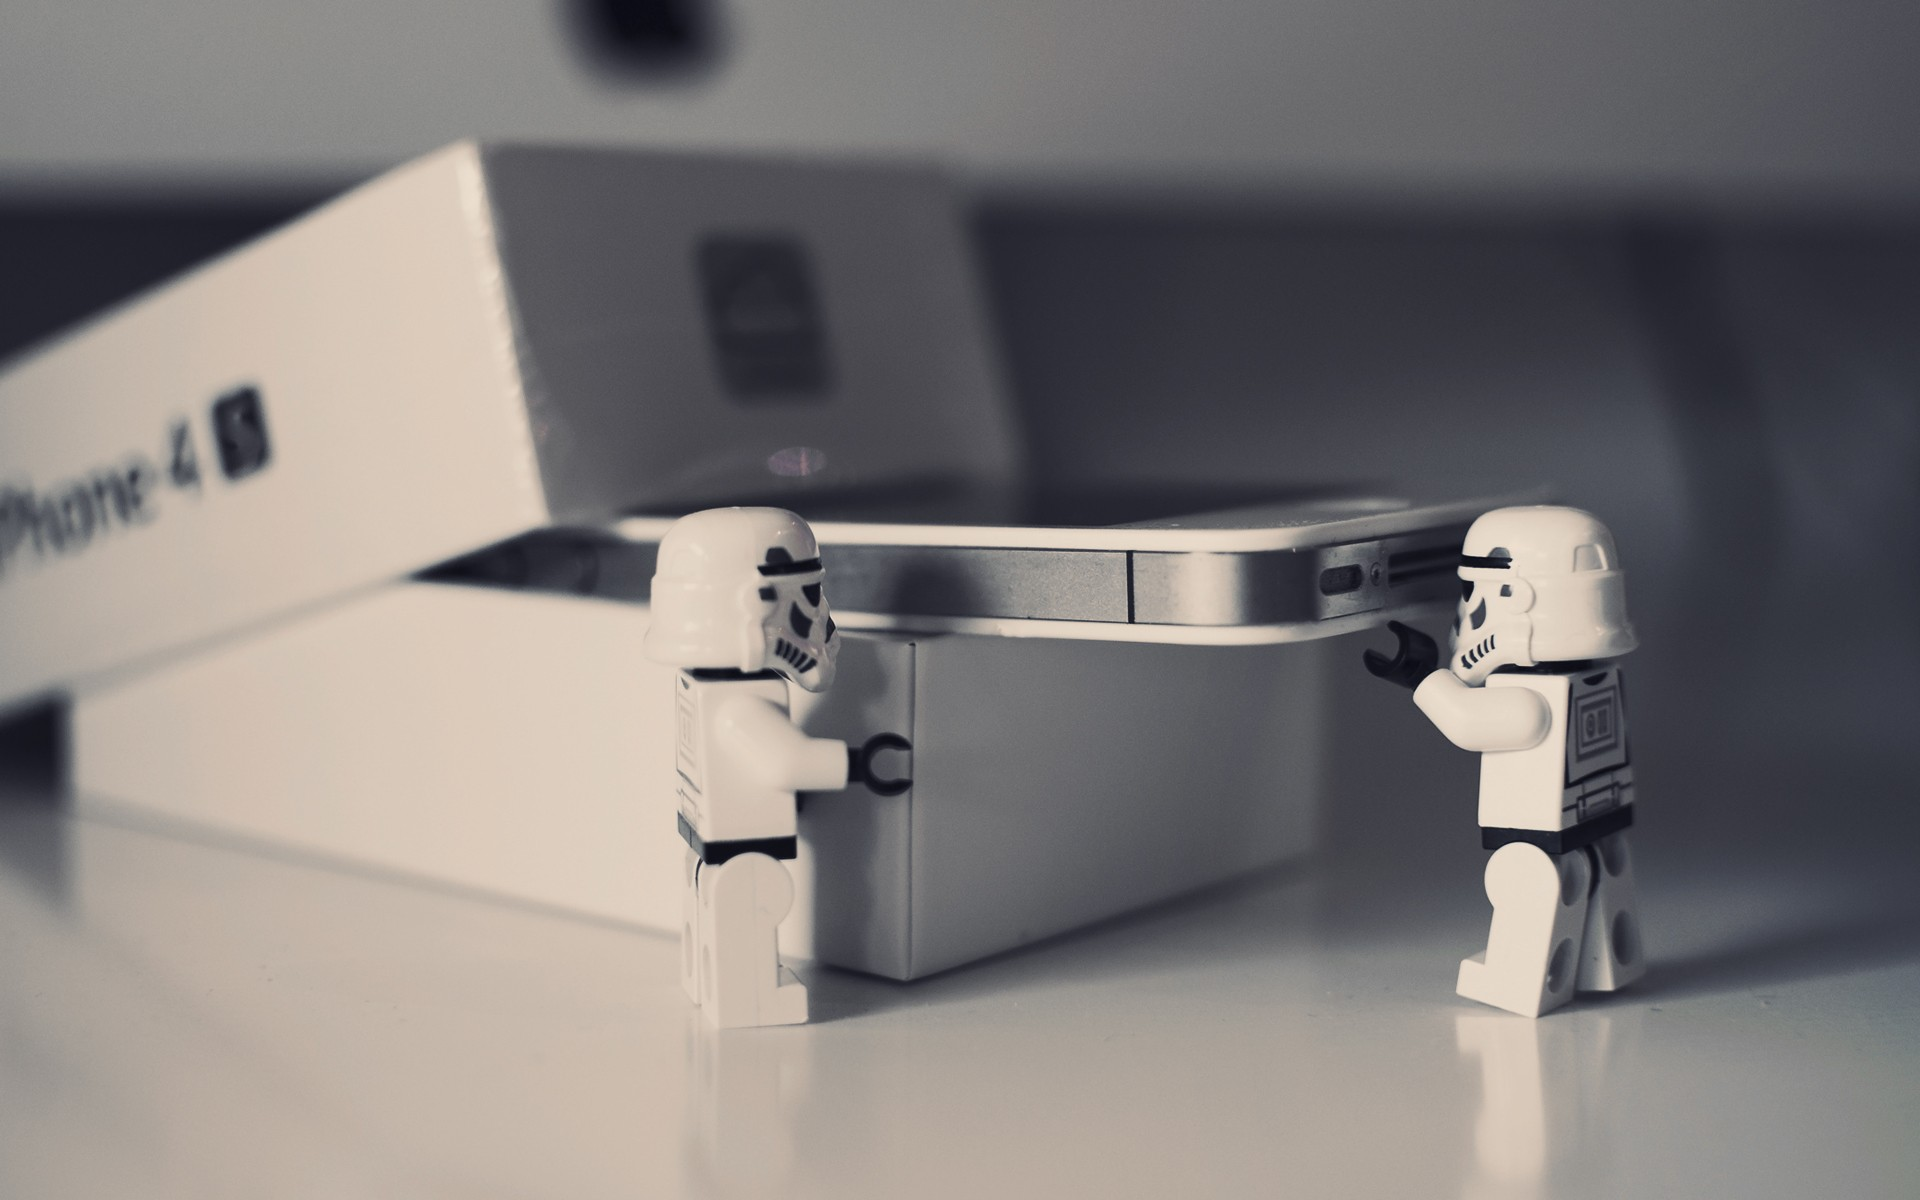 Alienware Animated Wallpaper Lego Star Wars Iphone 4 Unboxing Wallpapers Lego Star